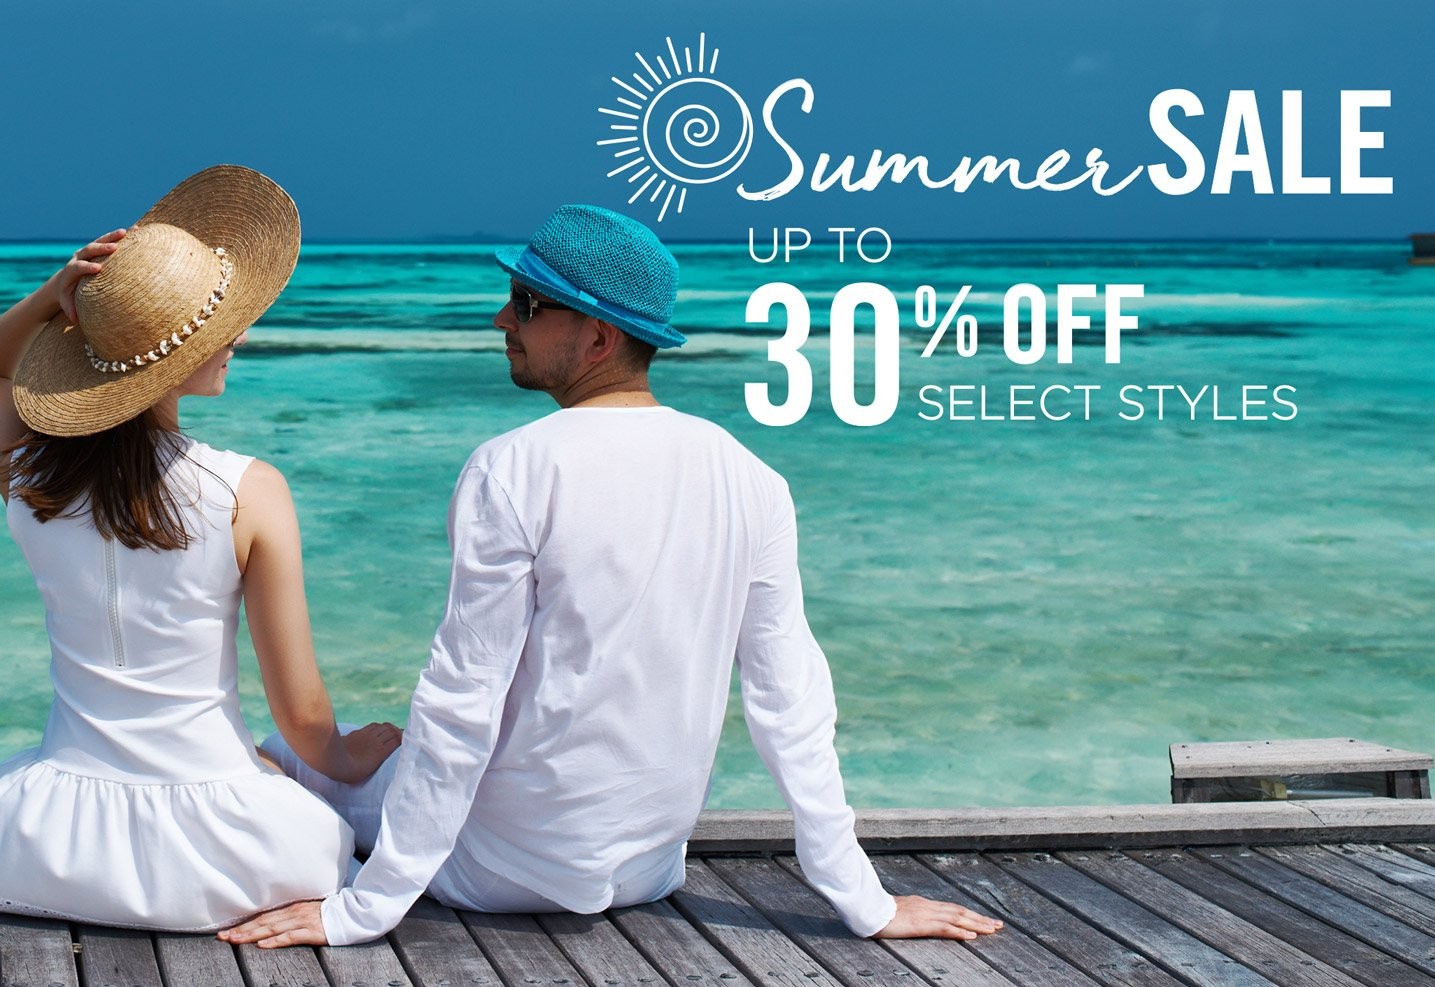 Summer Sale - Save on select men's and women's styles